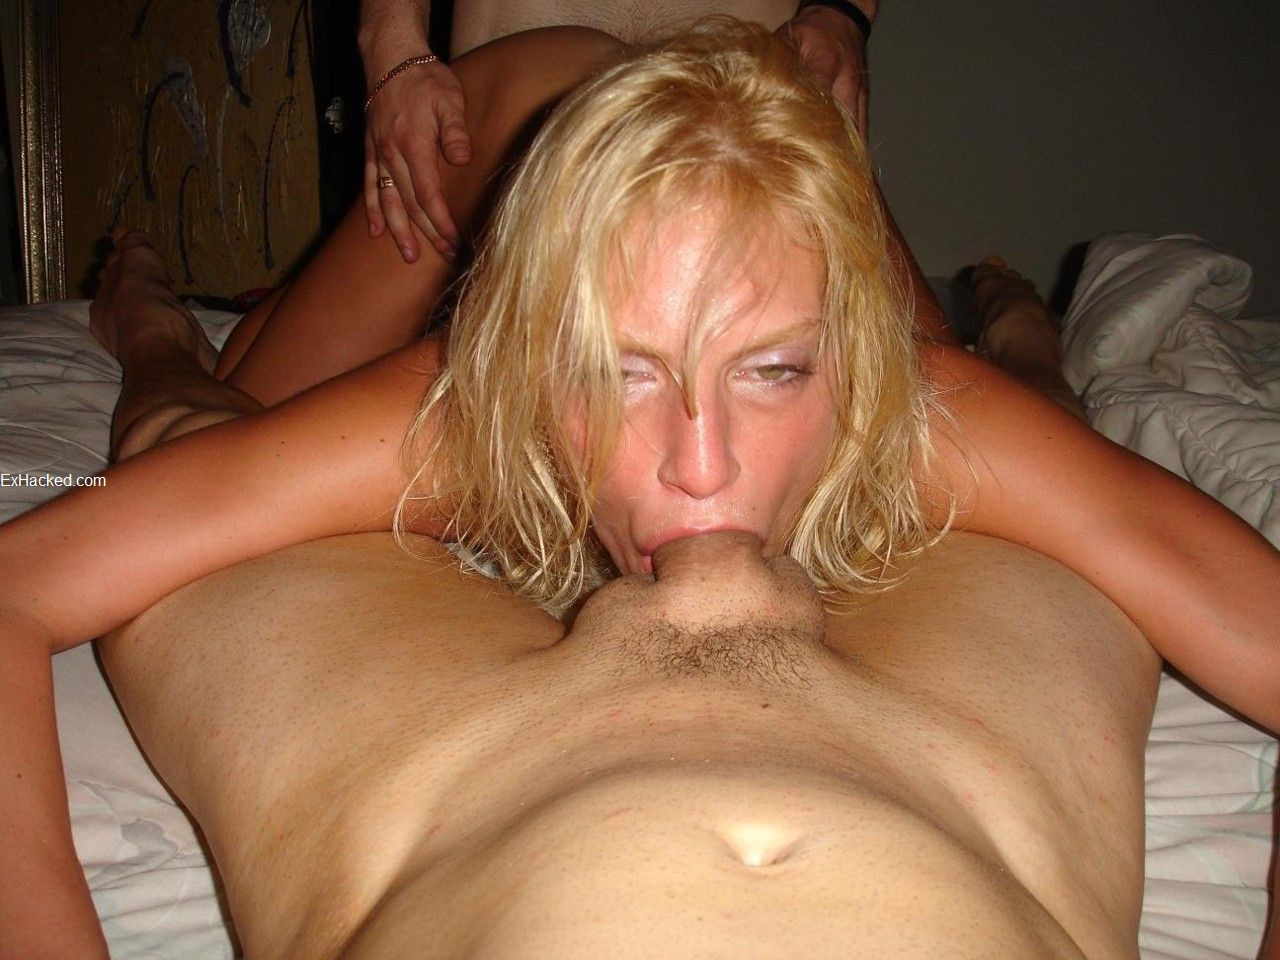 Naughty shemale pics free Porno most watched pic 100% free